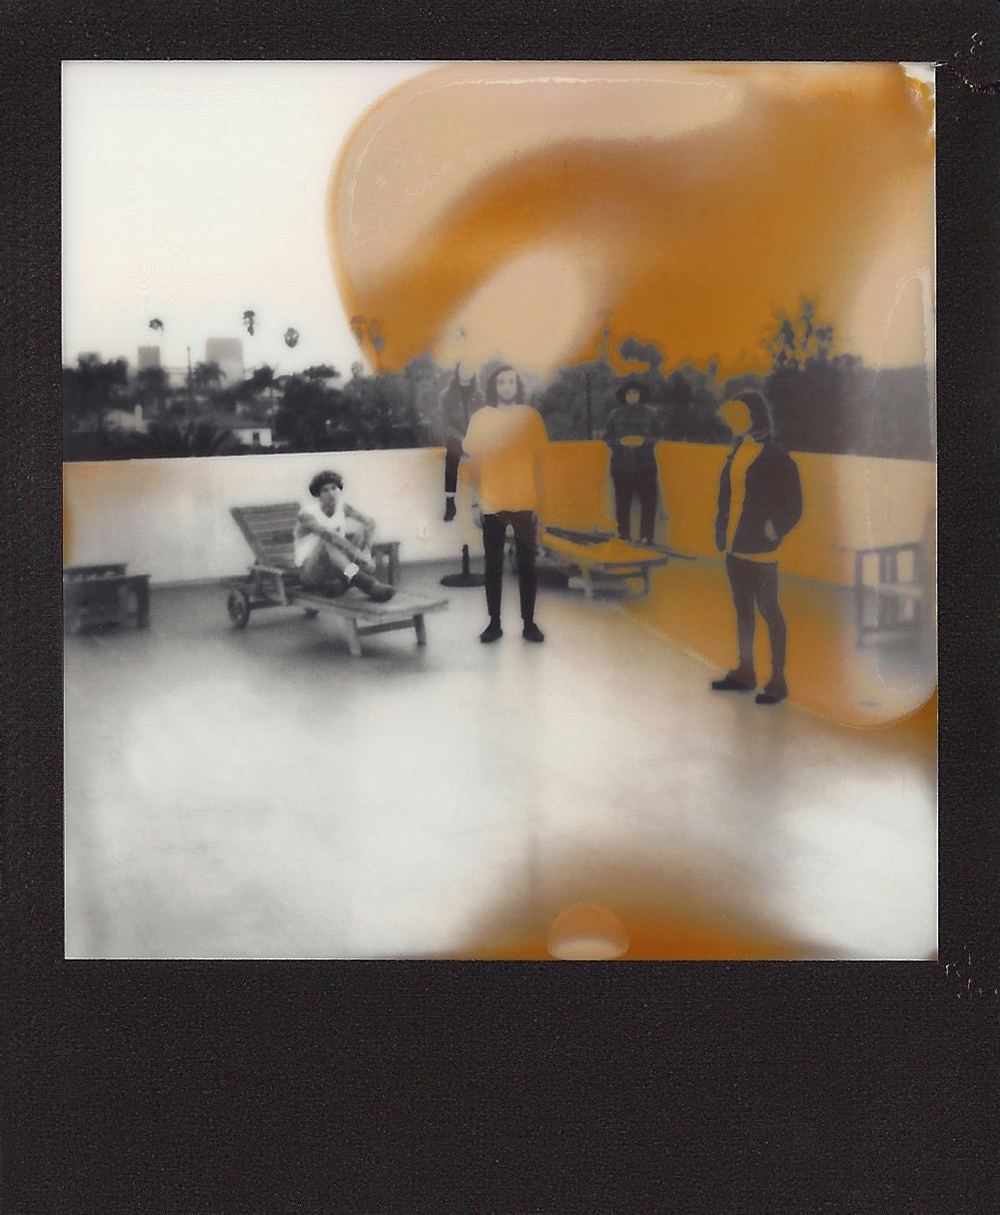 The-NBHD-Polaroid-19-casenruiz.jpg